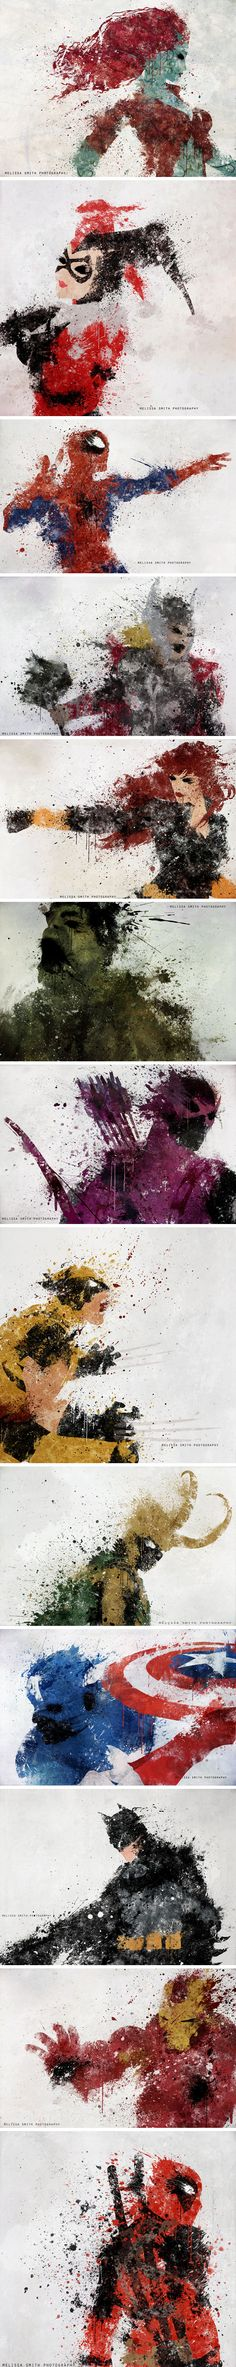 Melissa Smiths superhero splatter art. Too cool! Brings out your inner geek :)